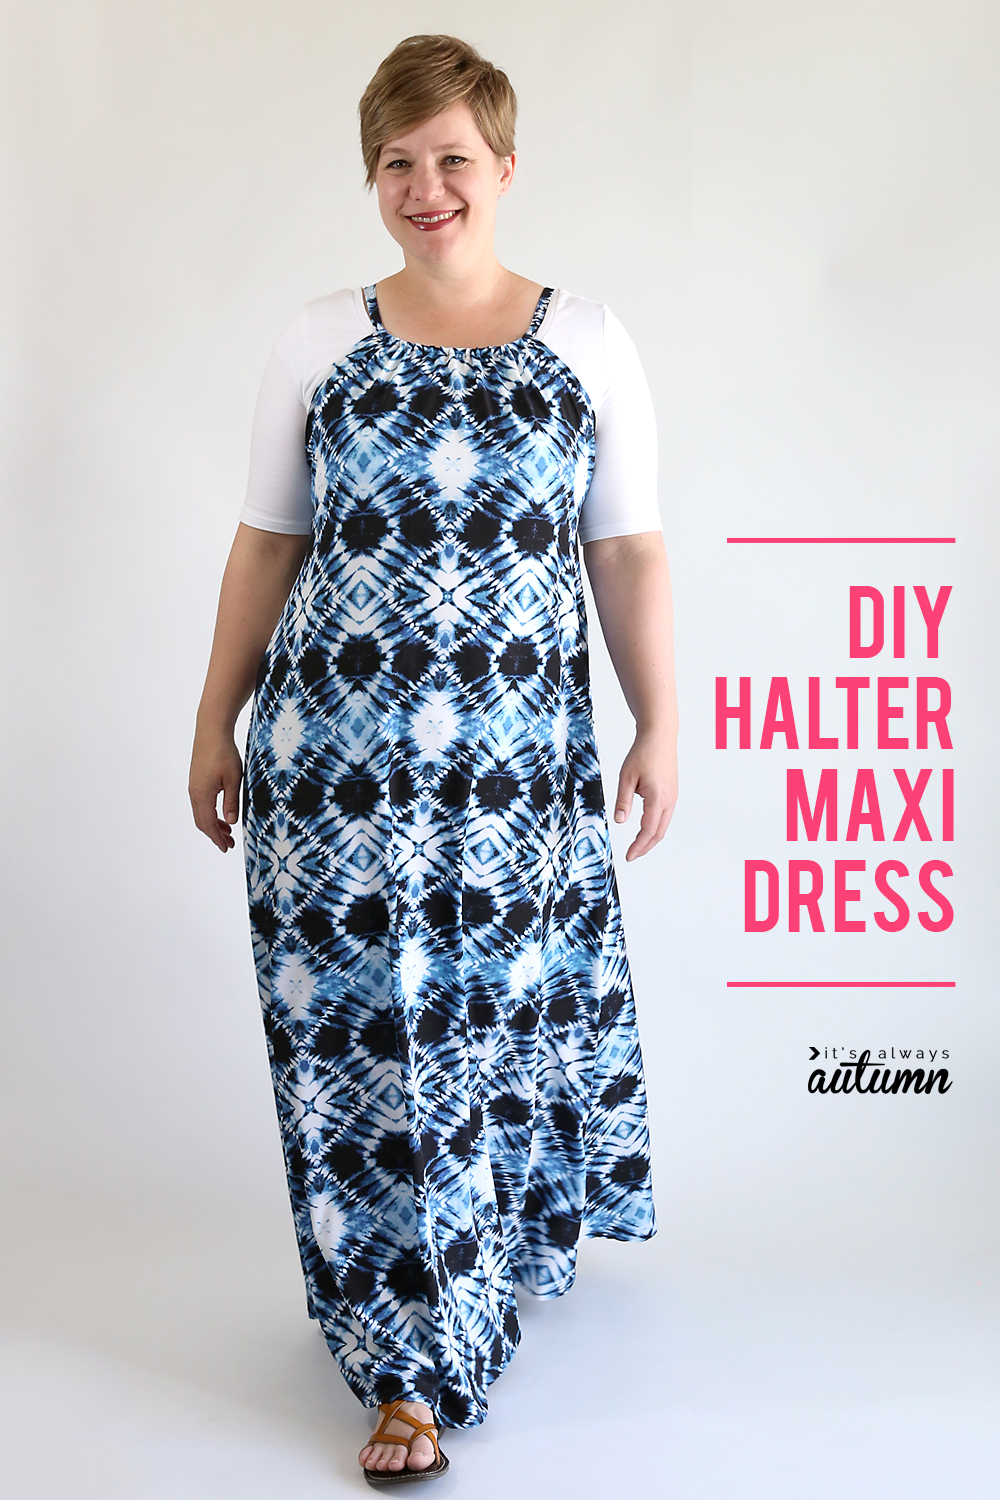 Learn how to make a DIY halter maxi dress. Click through for the easy sewing tutorial. How to sew a maxi dress.